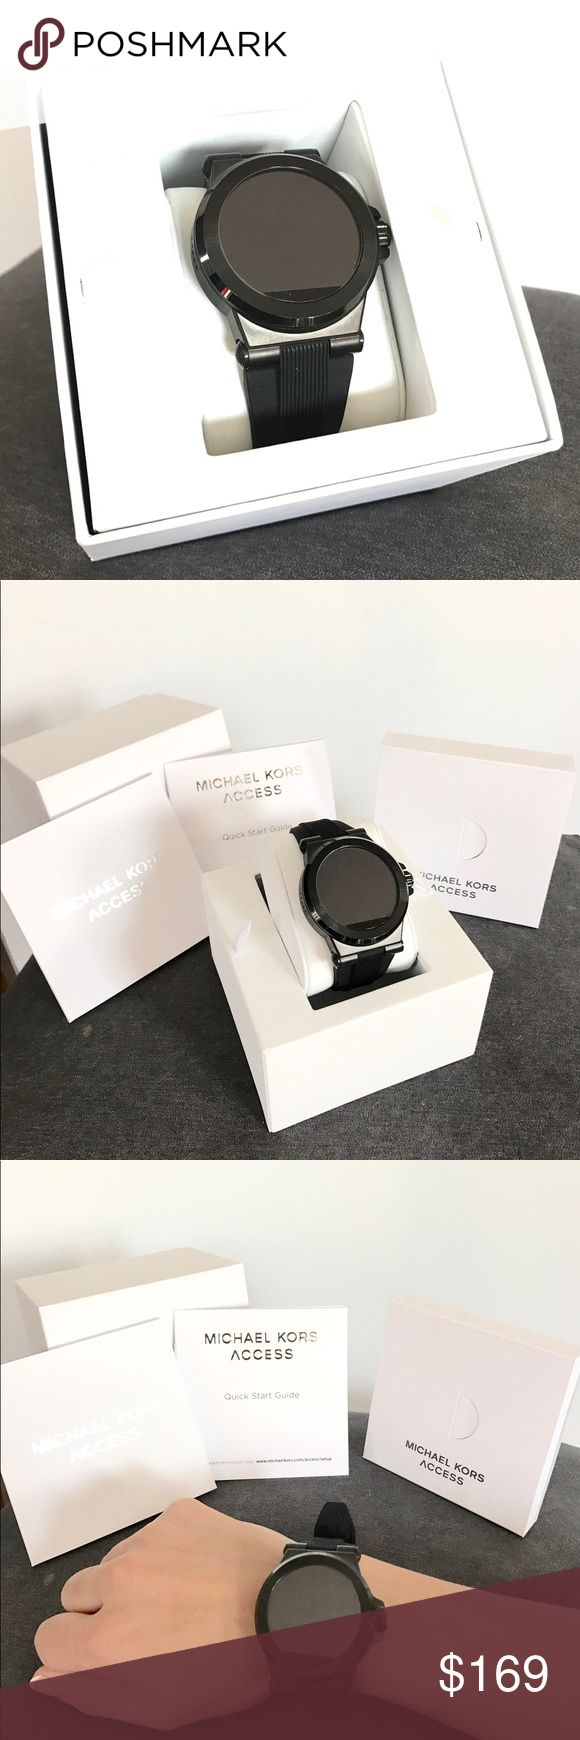 New Open Box MK unisex Dylan smartwatch Technology meets jet-set style with the men's Michael Kors Access Dylan rose gold-tone display smartwatch. Powered by Android Wear™, this smartwatch connects with your favorite apps and is compatible with Apple and Android smartphones. Receive notifications, such as calls and alerts, at a glance as well. Fully personalize your watch by selecting or customizing the watch face of your choice and changing out the straps to match your activity or look…